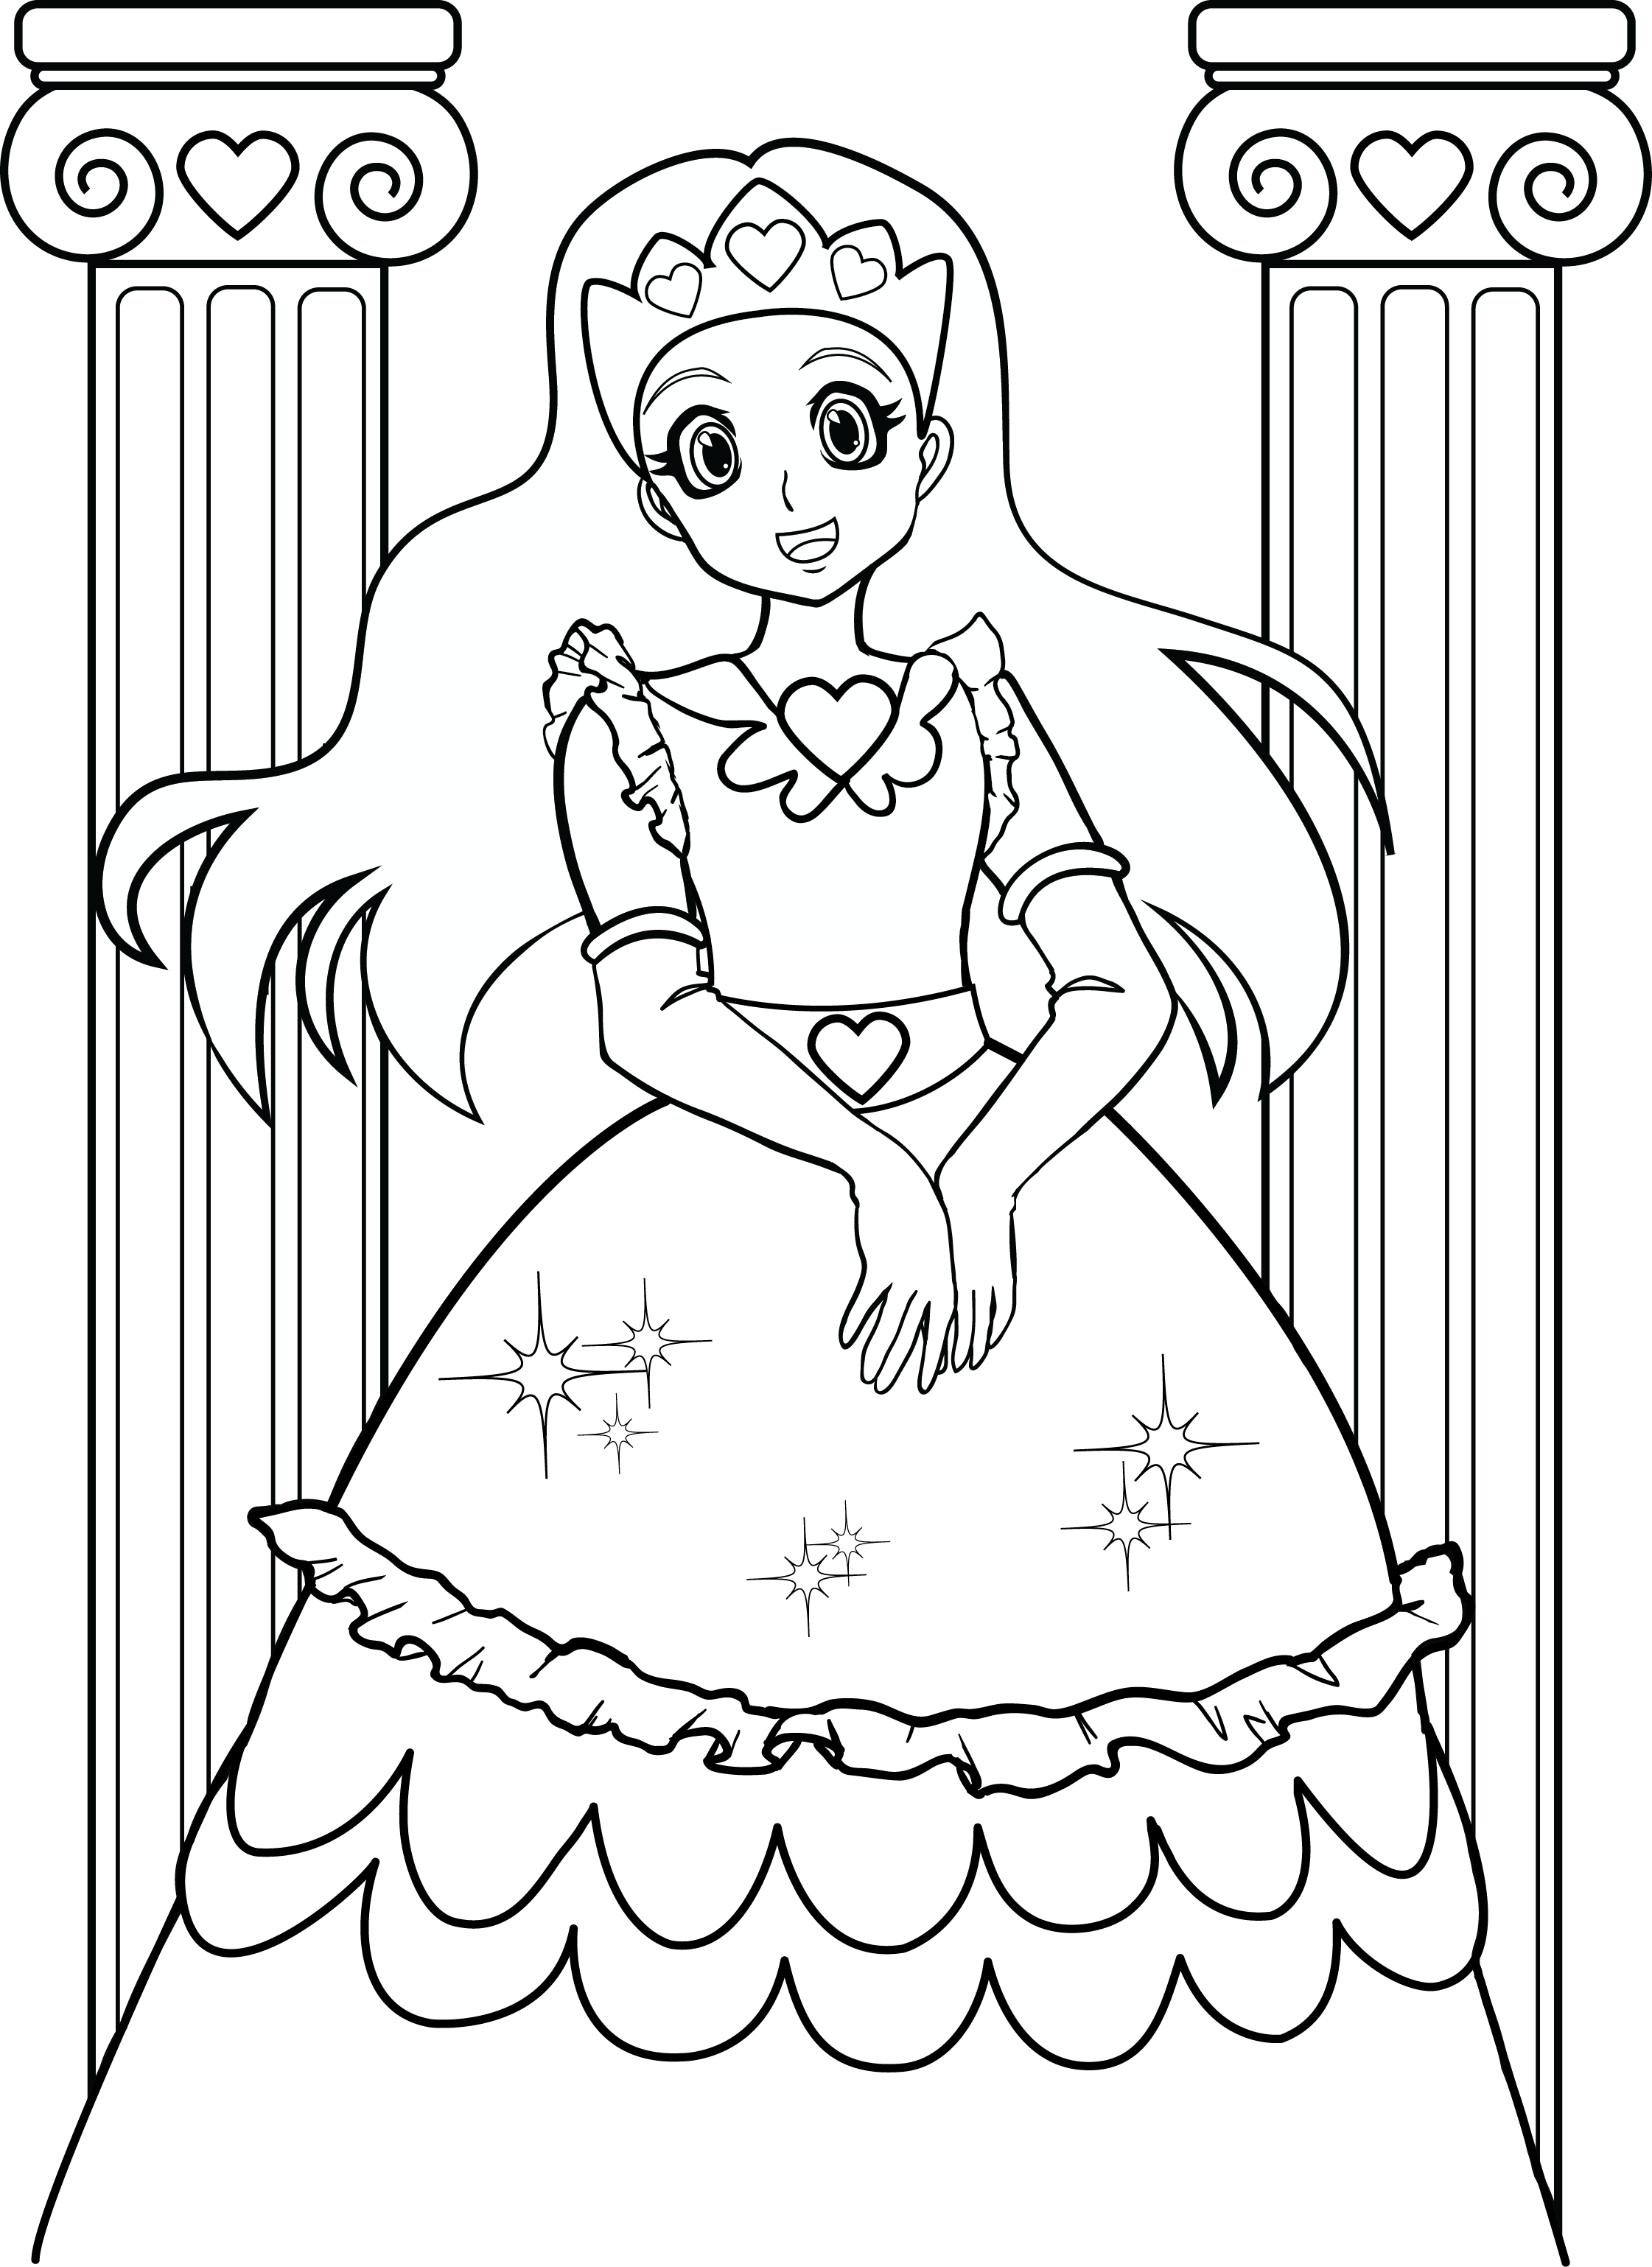 download coloring pages for girls 7 print - Coloring Pages Girls Print